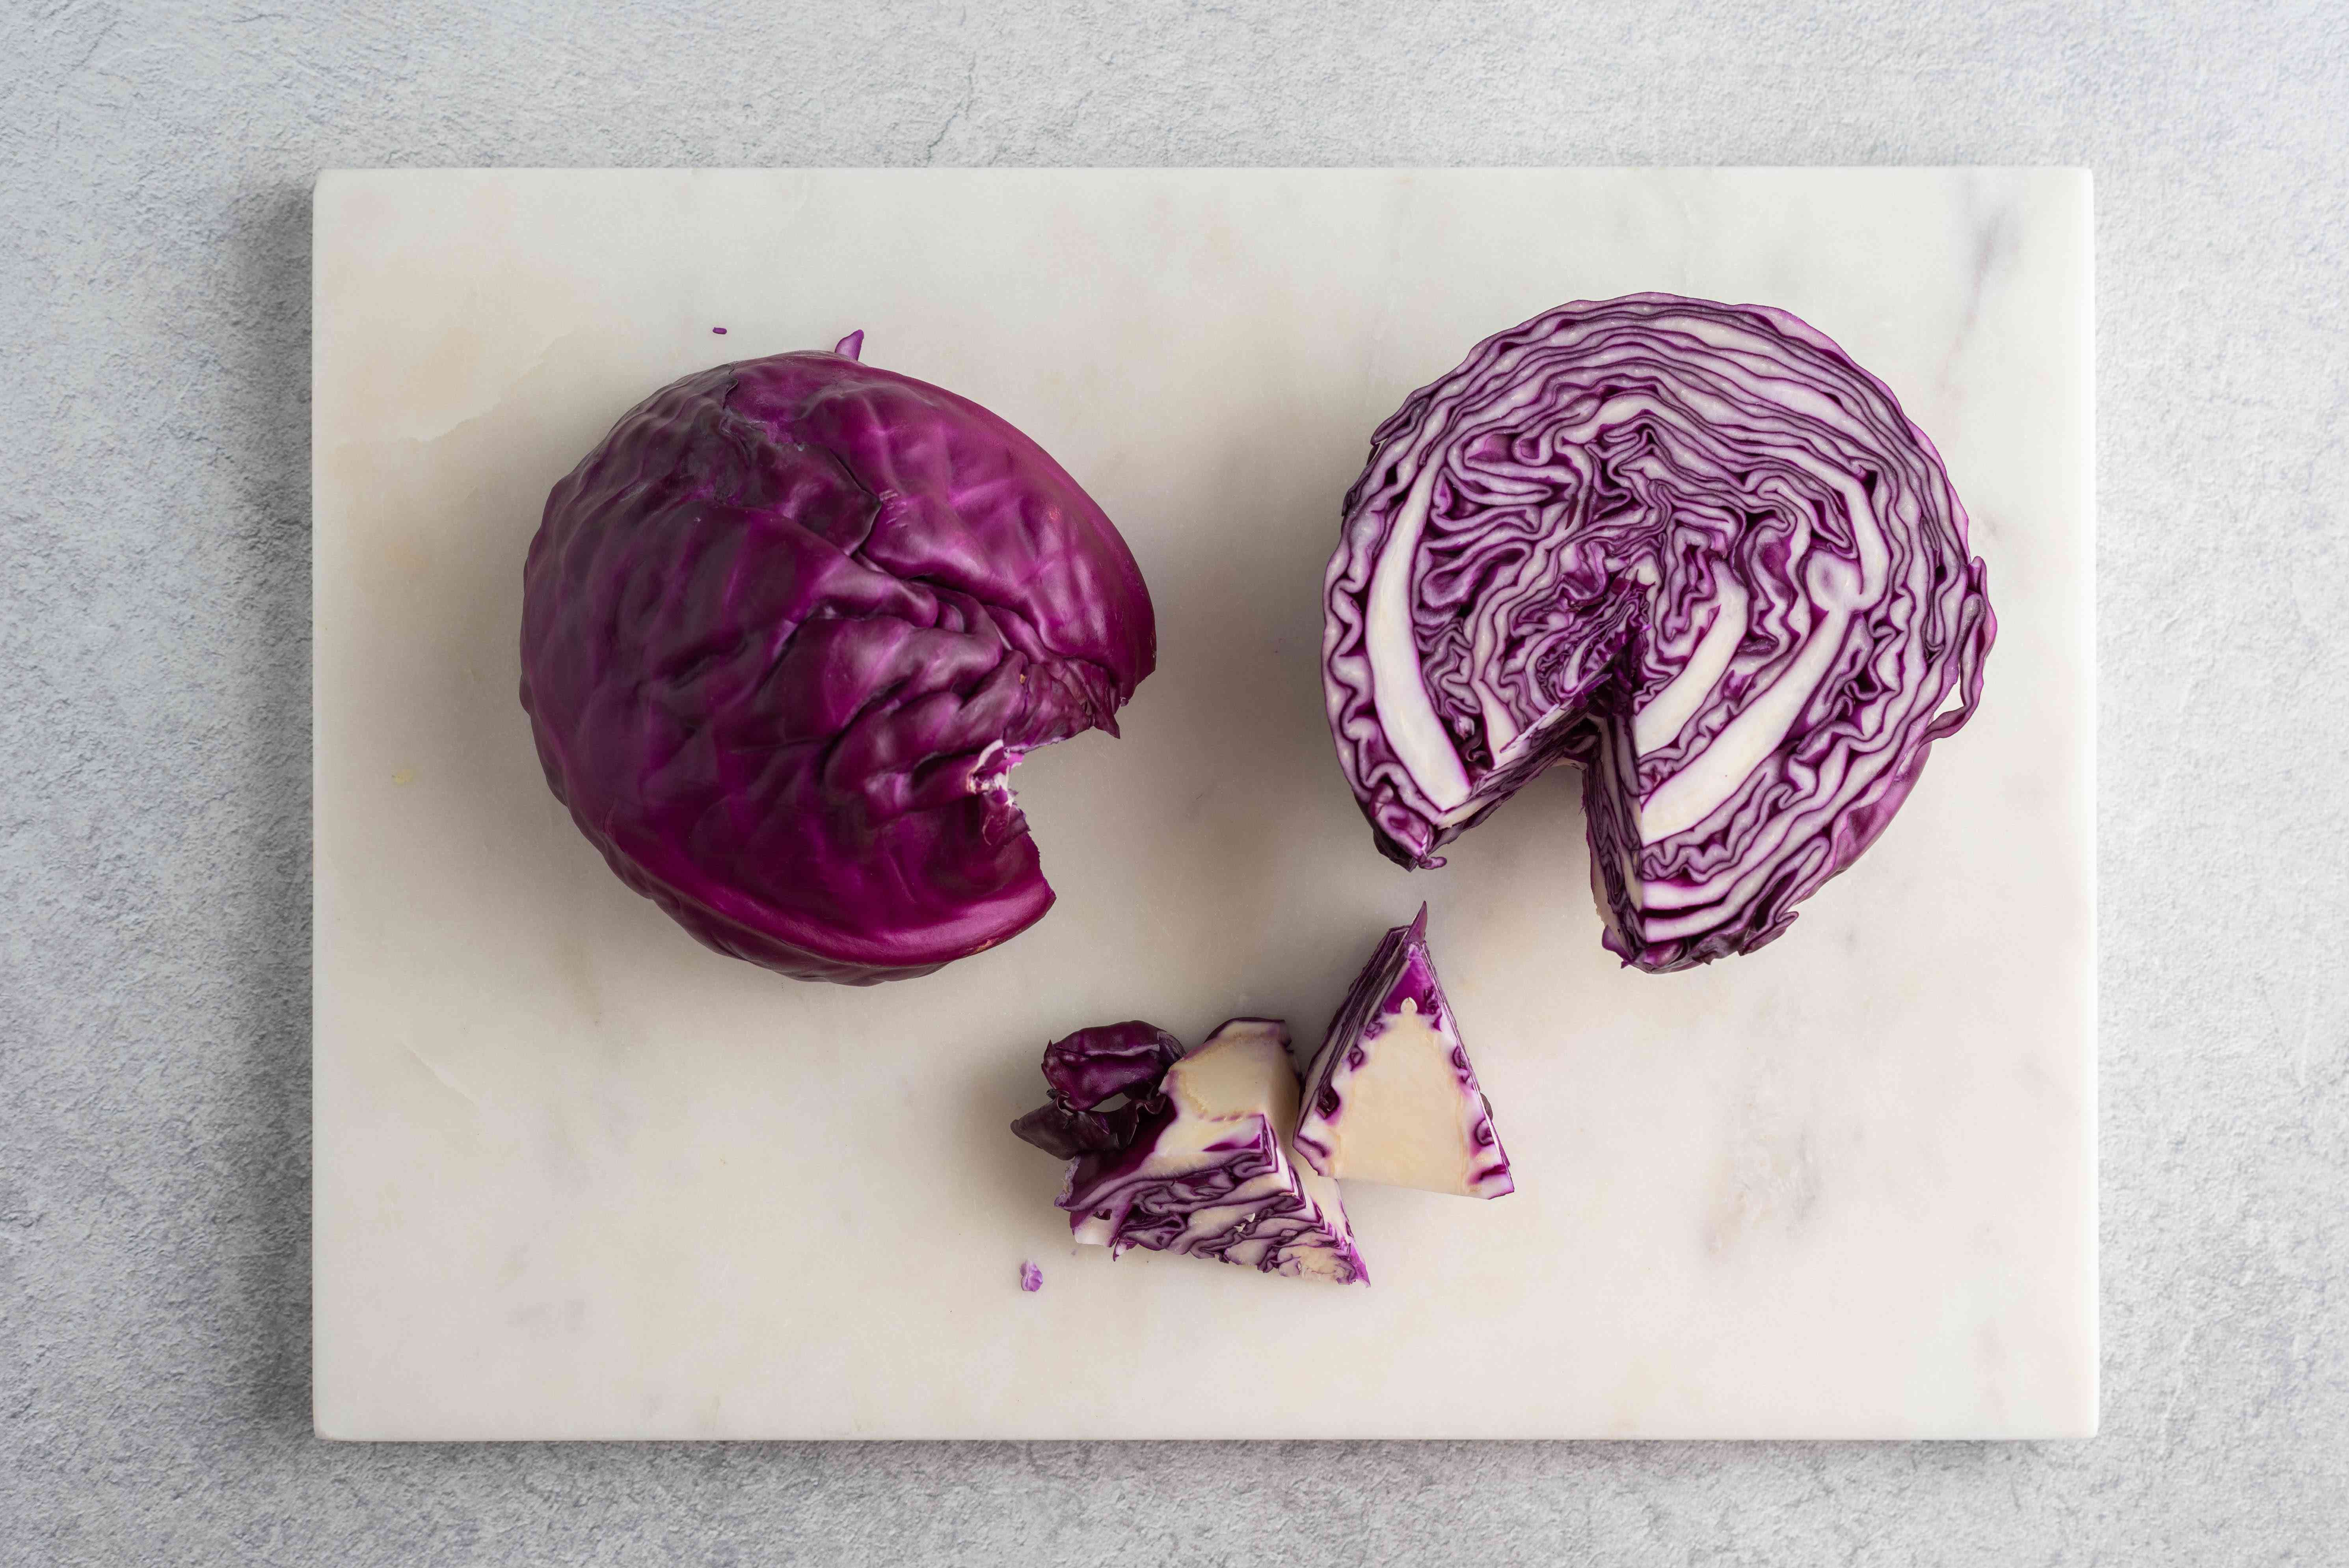 red cabbage with the core and stem removed on a cutting board